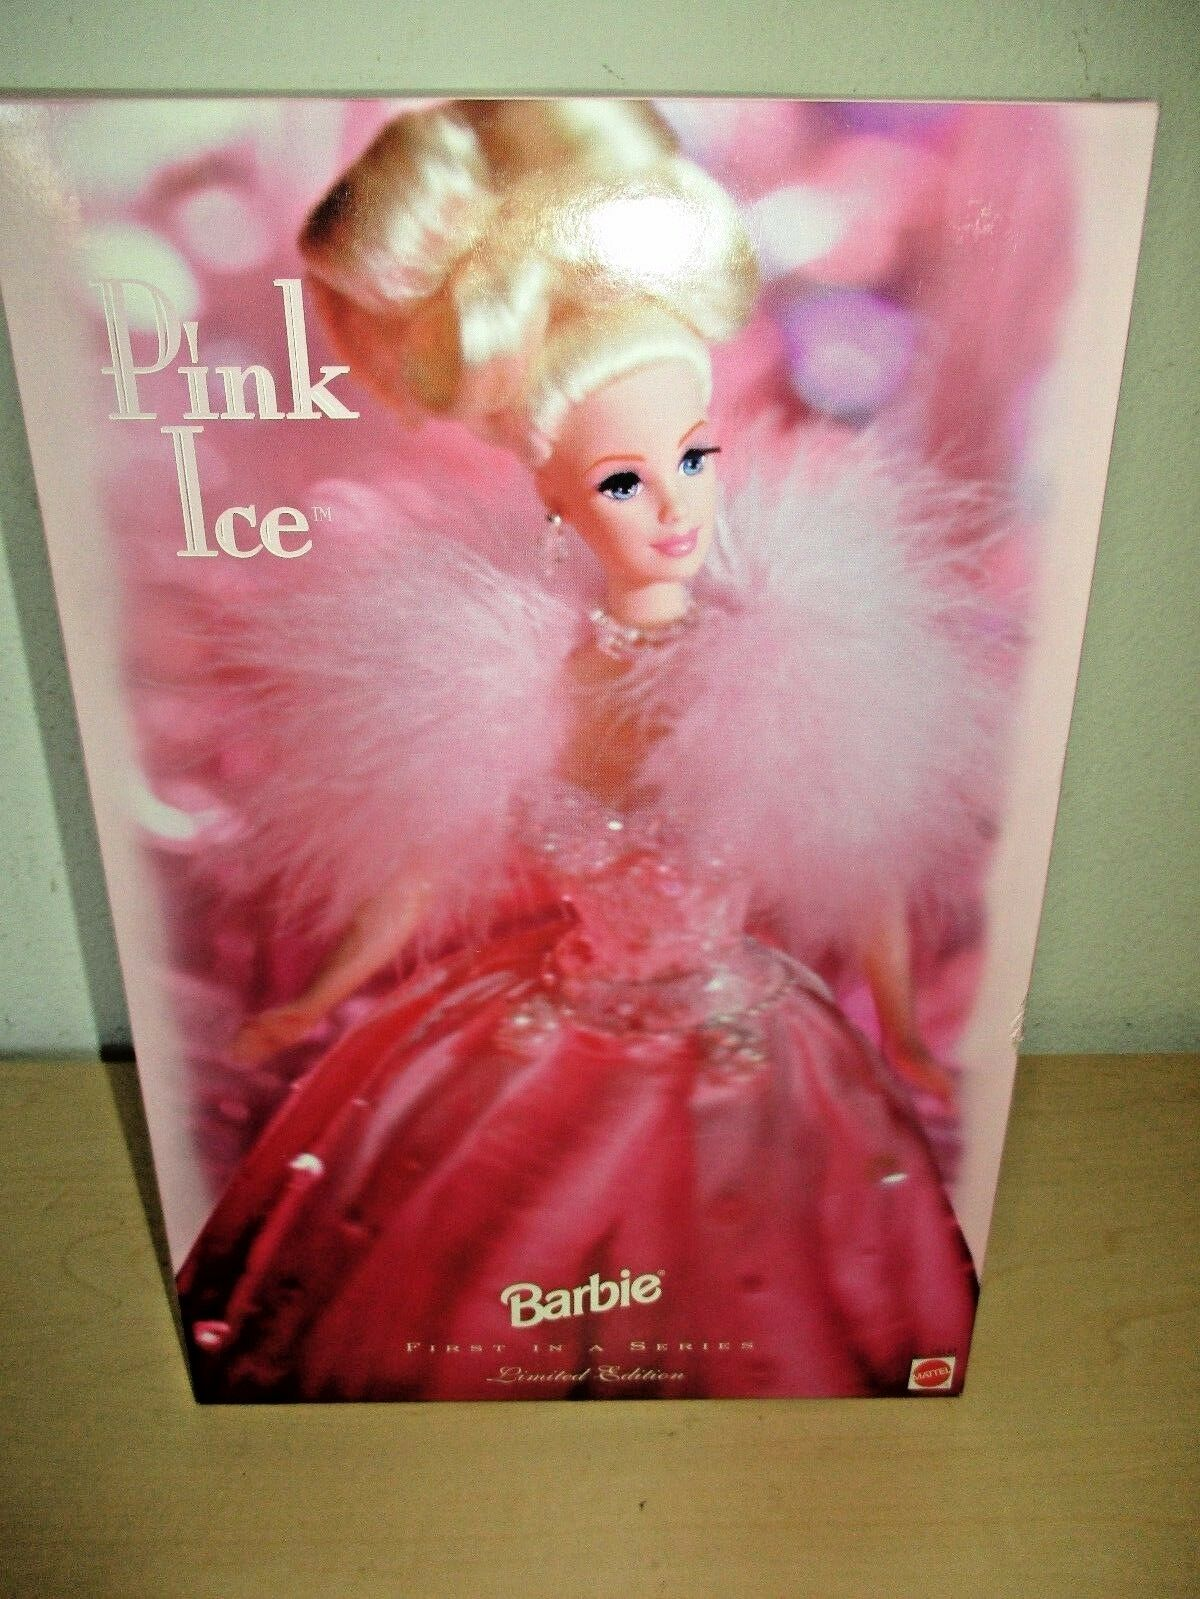 1996 BARBIE 1ST IN A SERIES LIMITED EDITION PINK ICE BY MATTEL. NIB.